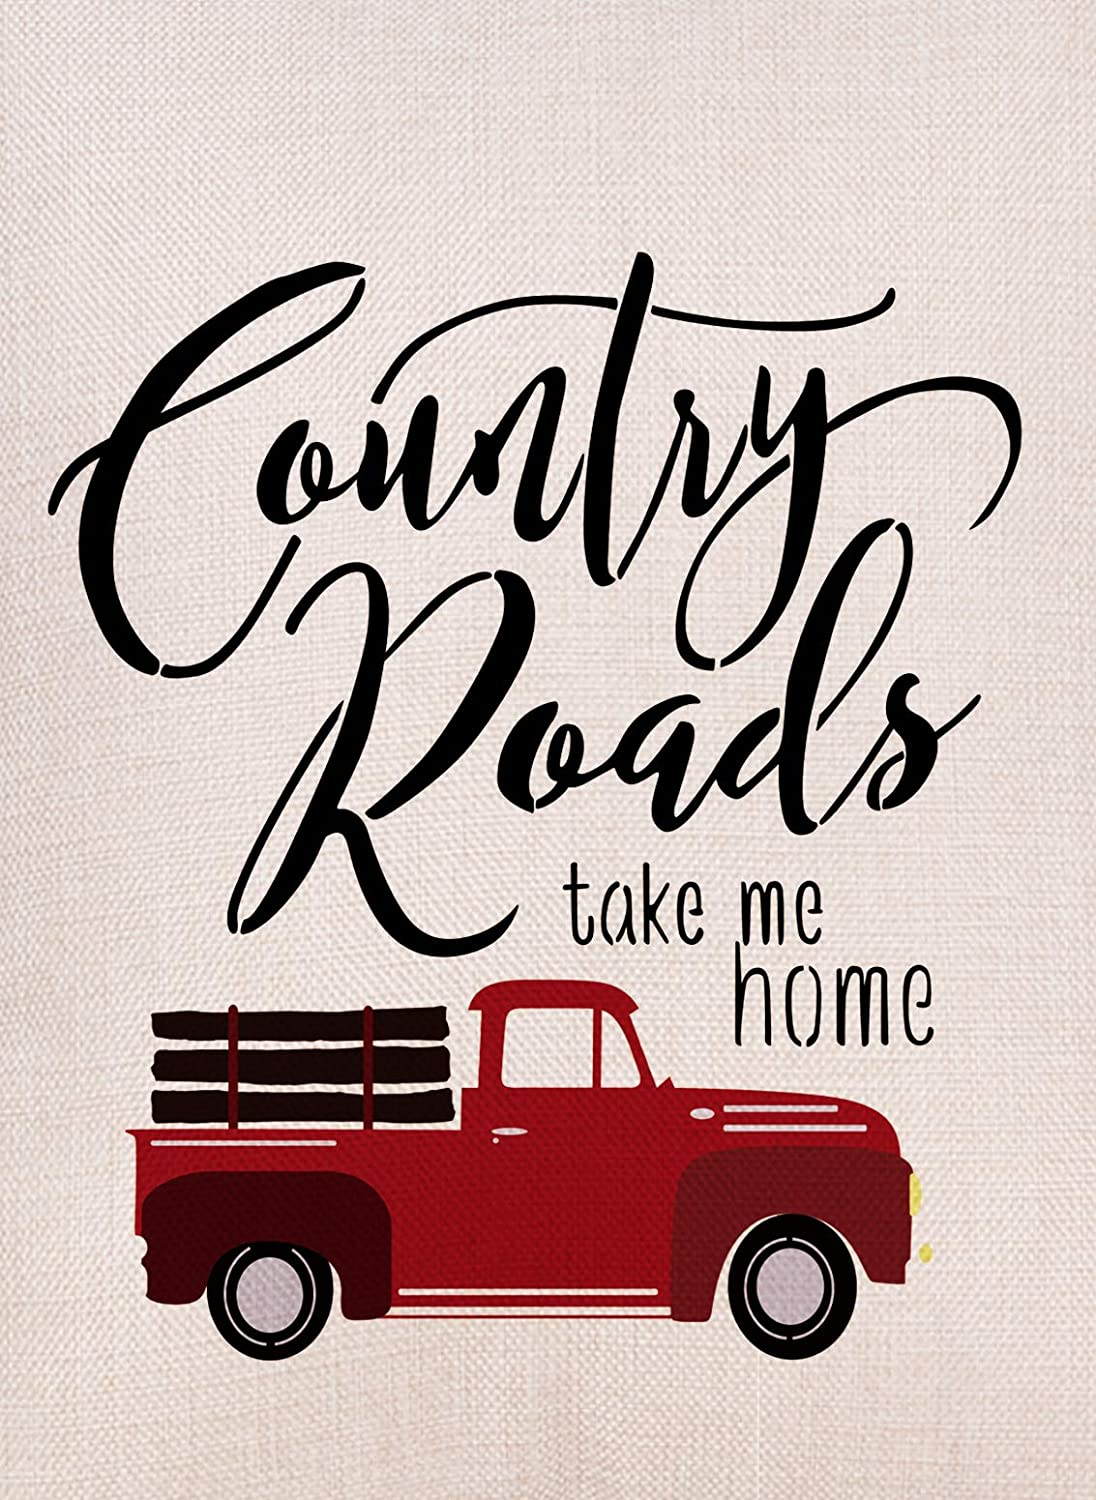 Artofy Country Roads Red Truck Small Garden Flag Double Sided, Home Decorative Burlap Welcome Quotes Farm House Yard Decoration, Vintage Farmhouse Seasonal Outdoor Décor Flag 12.5 x 18 Spring Summer